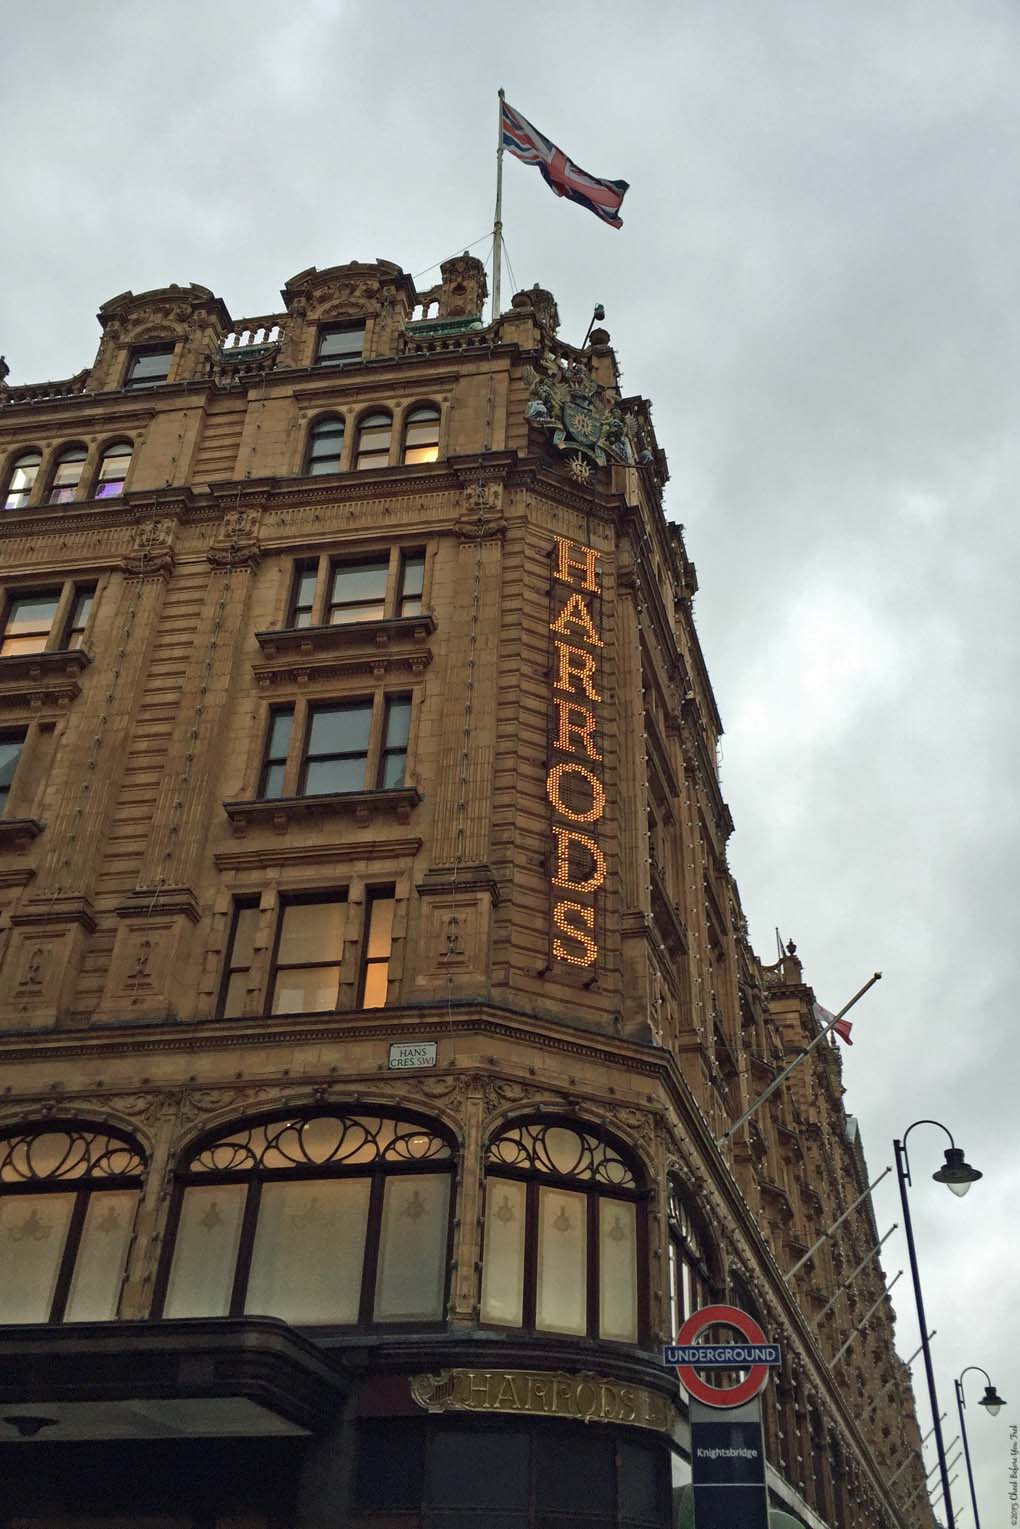 Harrods - London, England